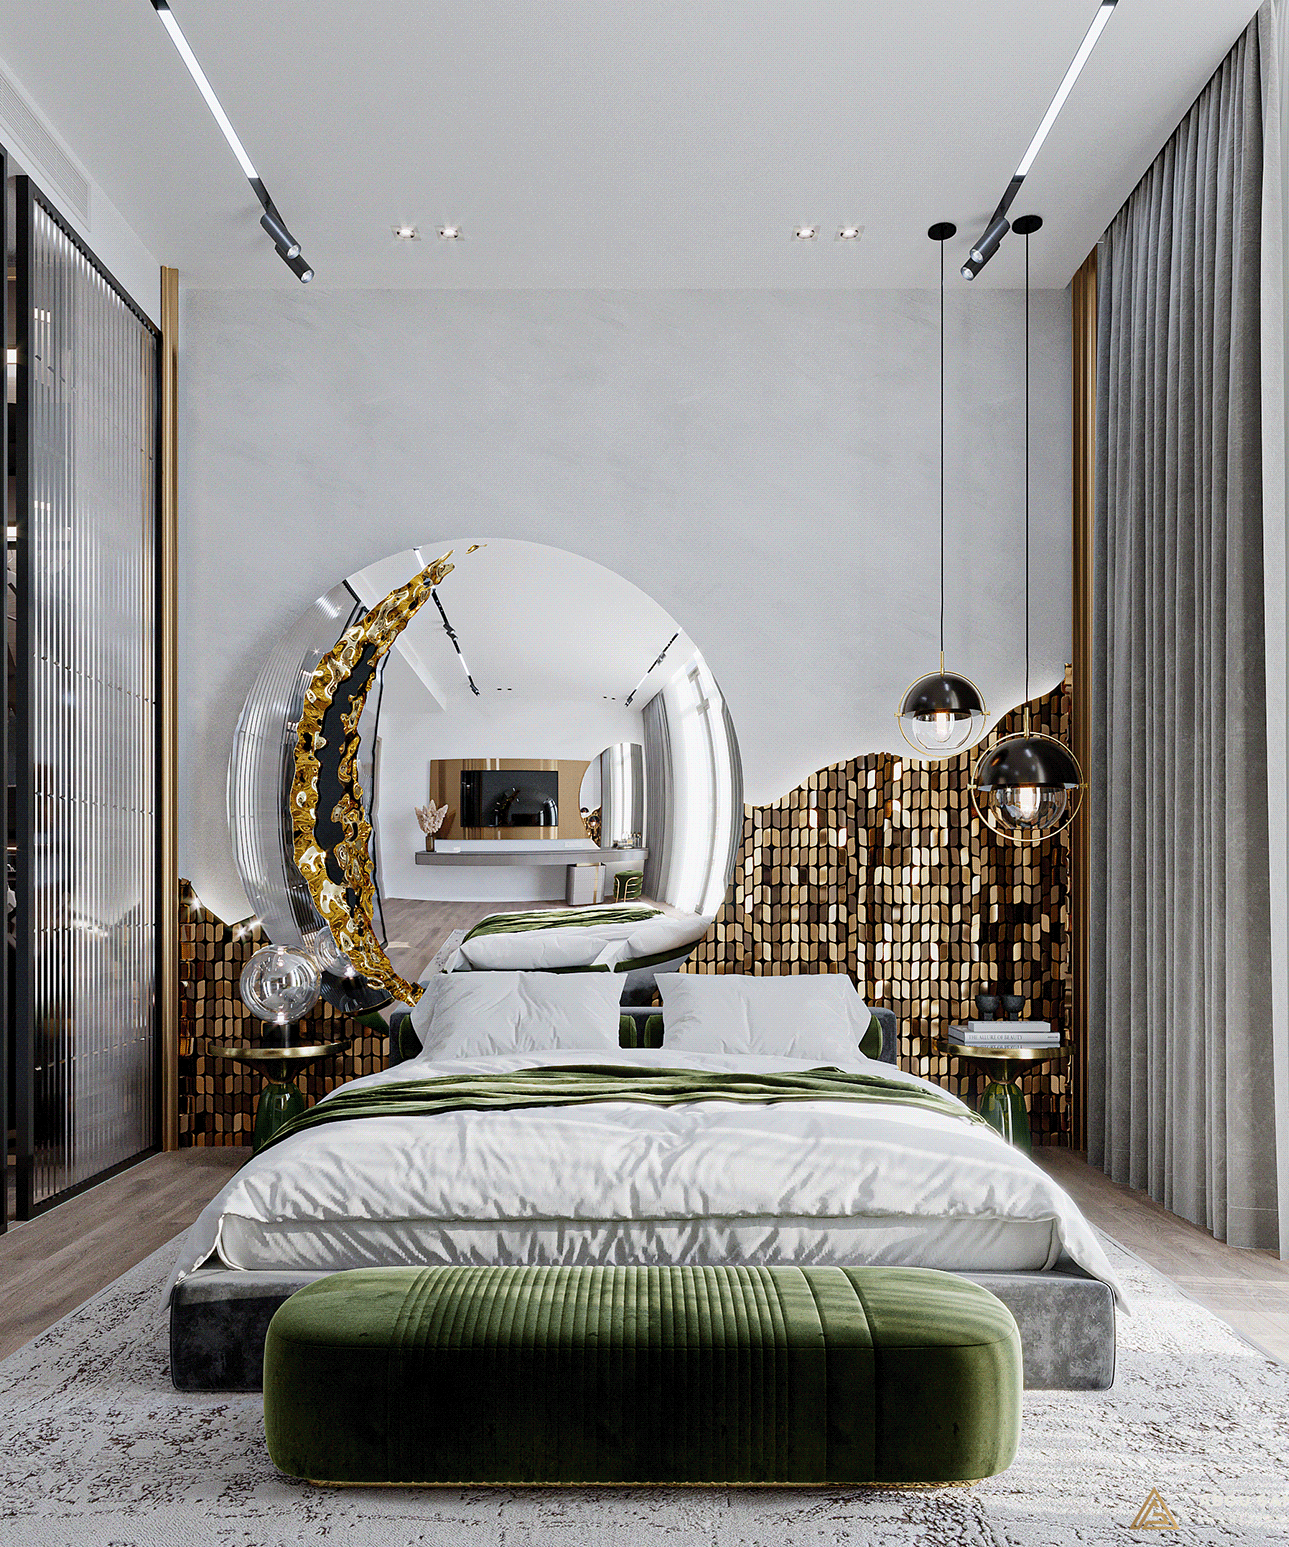 Gold and Glitter Moon Decor Ideas for a Stylish Bedroom